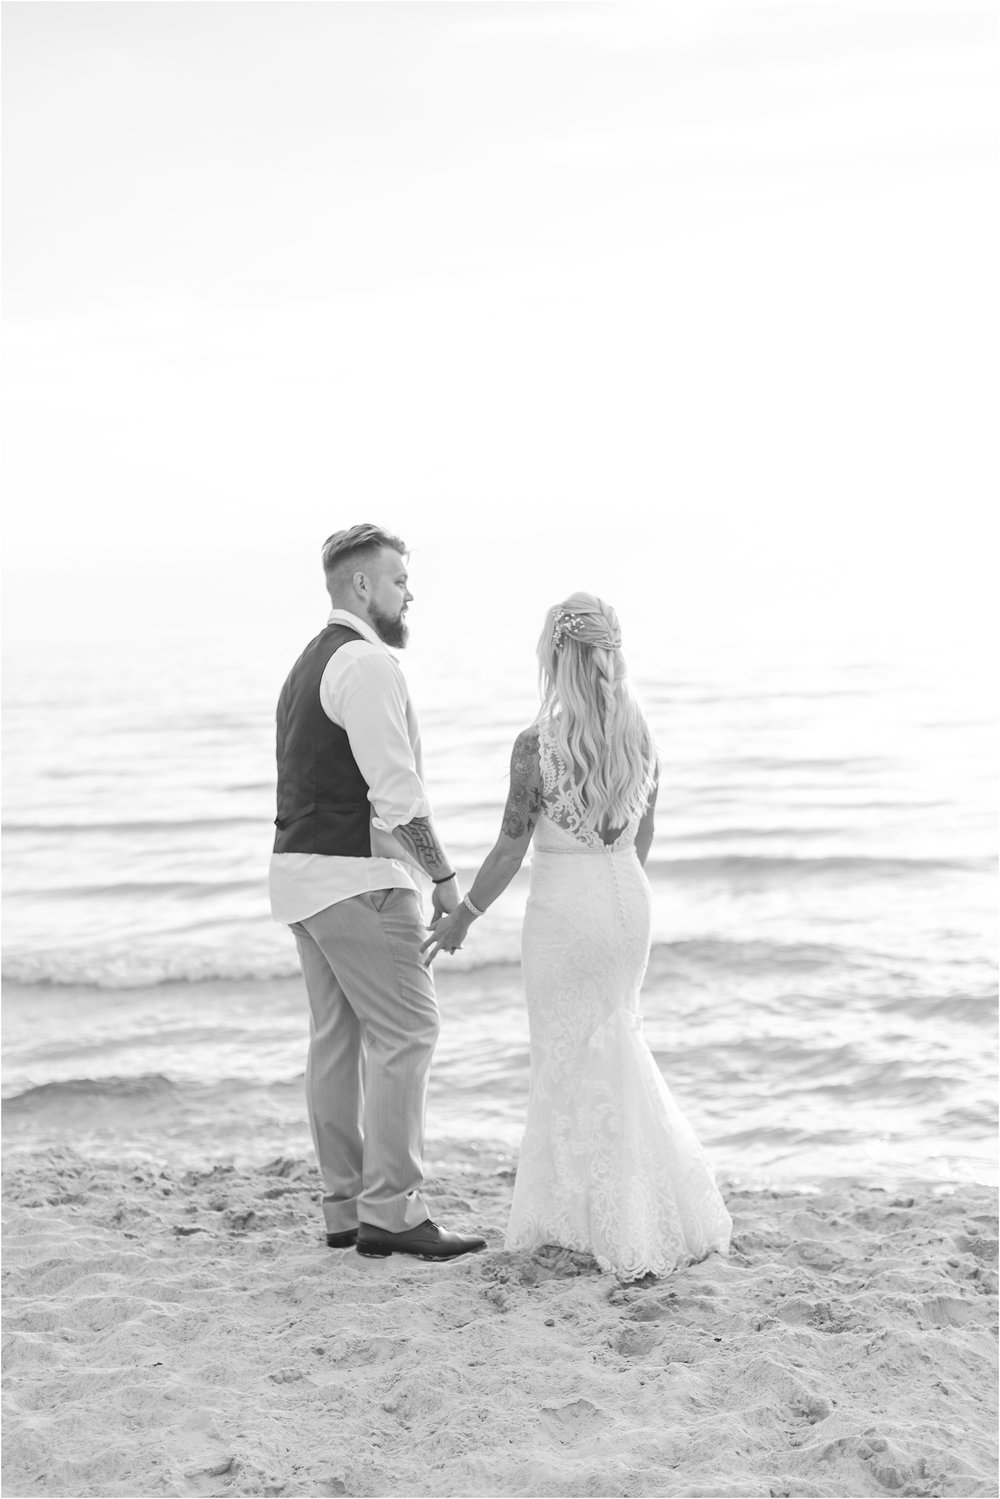 fun-whimsical-beach-wedding-photos-in-st-joseph-michigan-by-courtney-carolyn-photography_0101.jpg